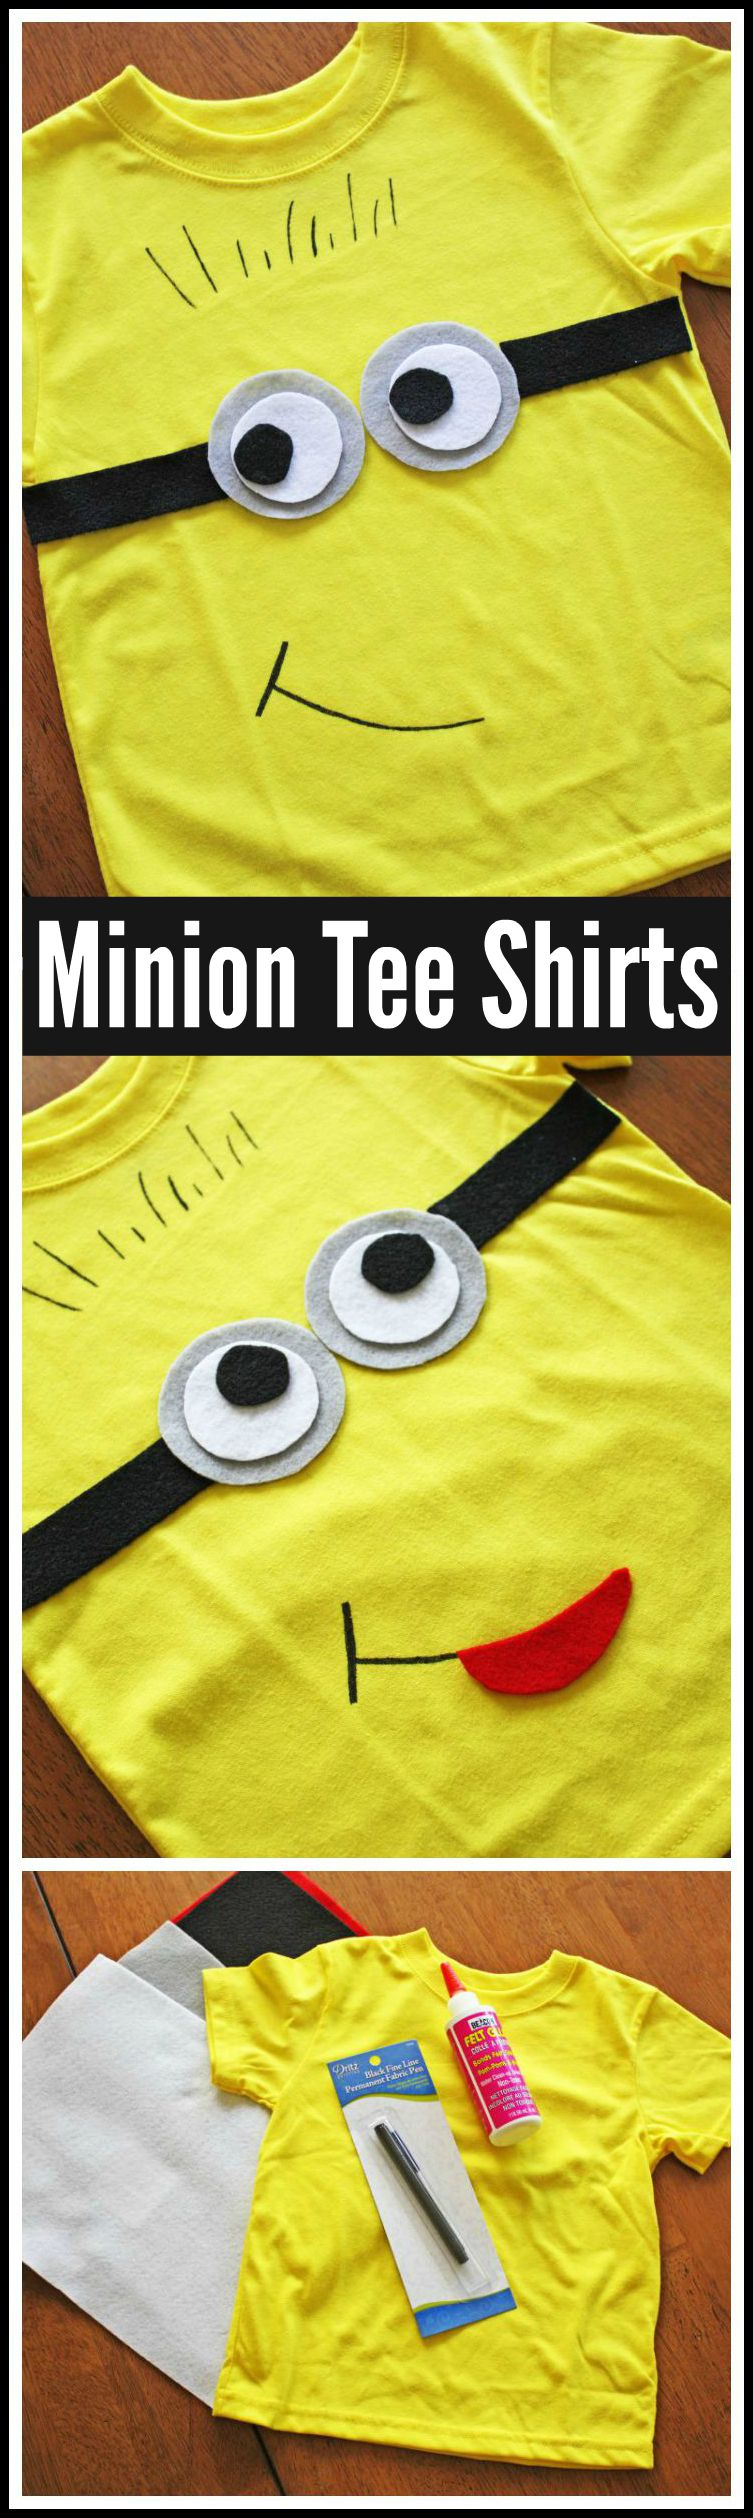 How Cute Is This Minion Tee Shirt? | Catch My Party